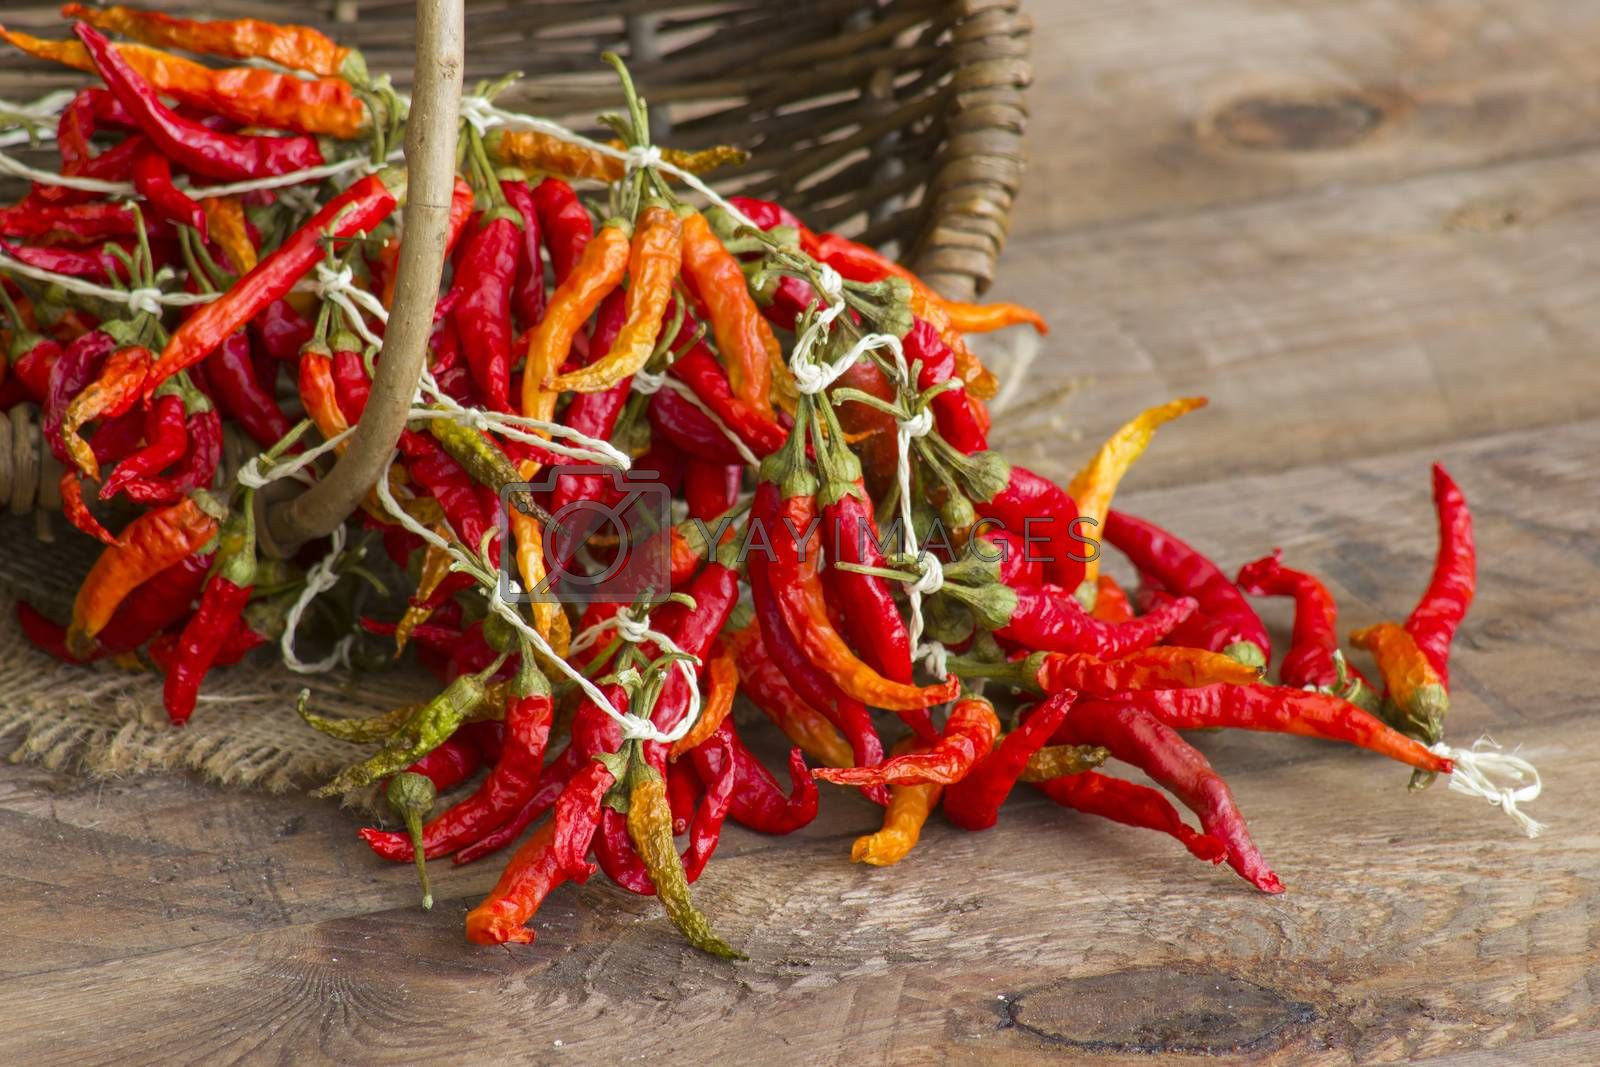 red chot chili peppers